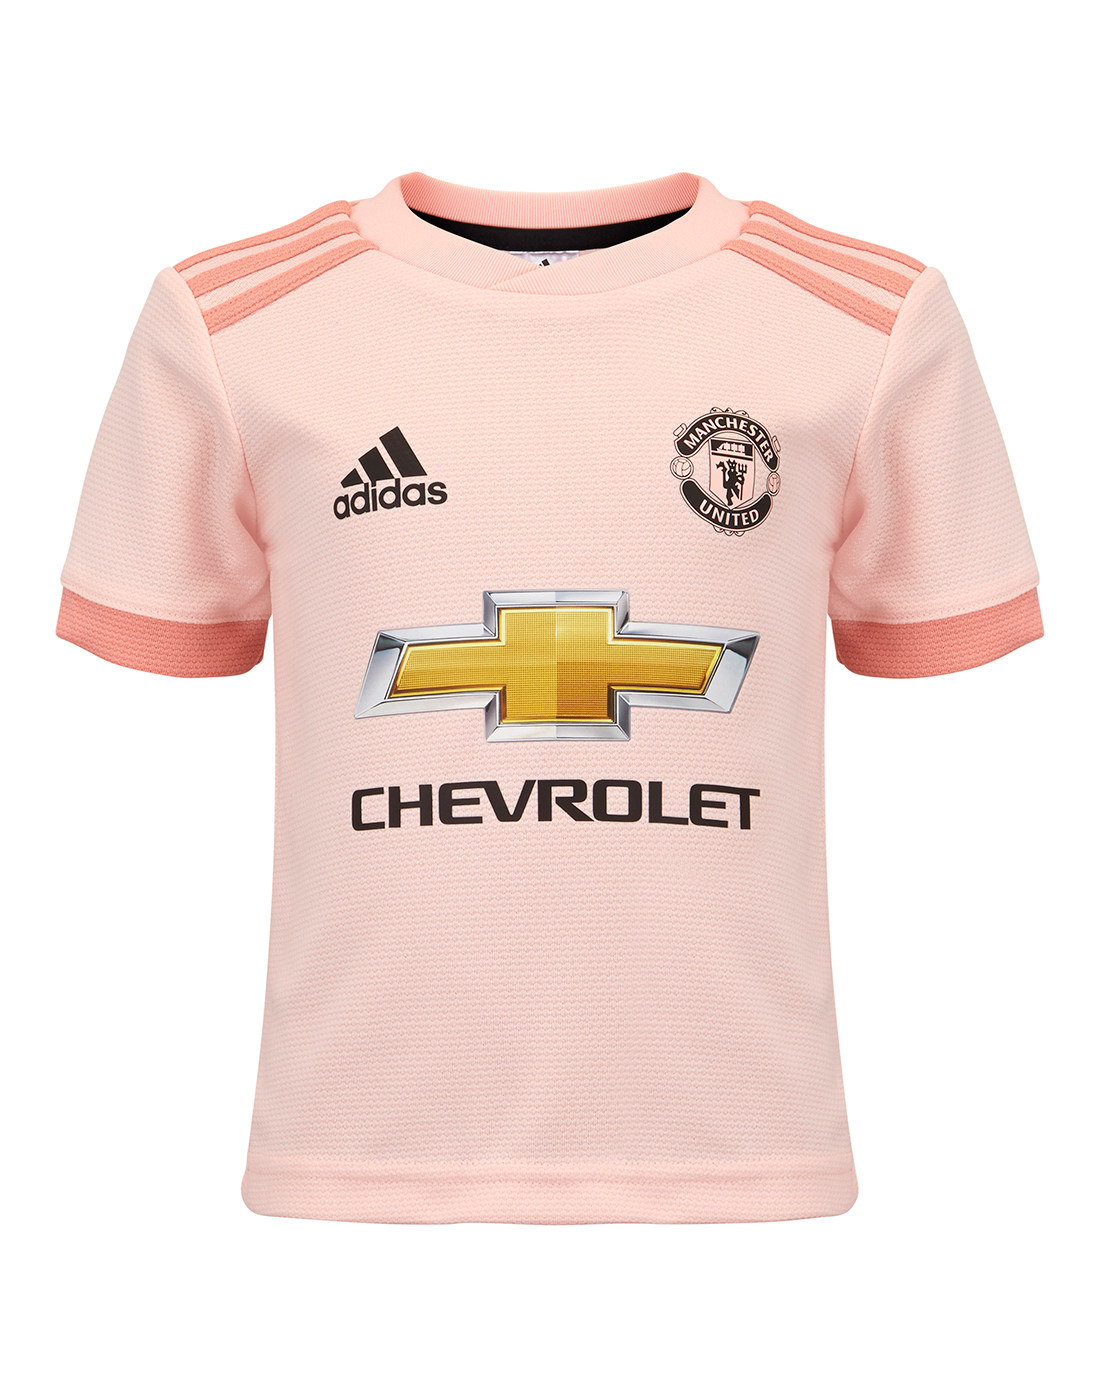 4126b95745 ... Kids Man Utd 18 19 Away Kit ...